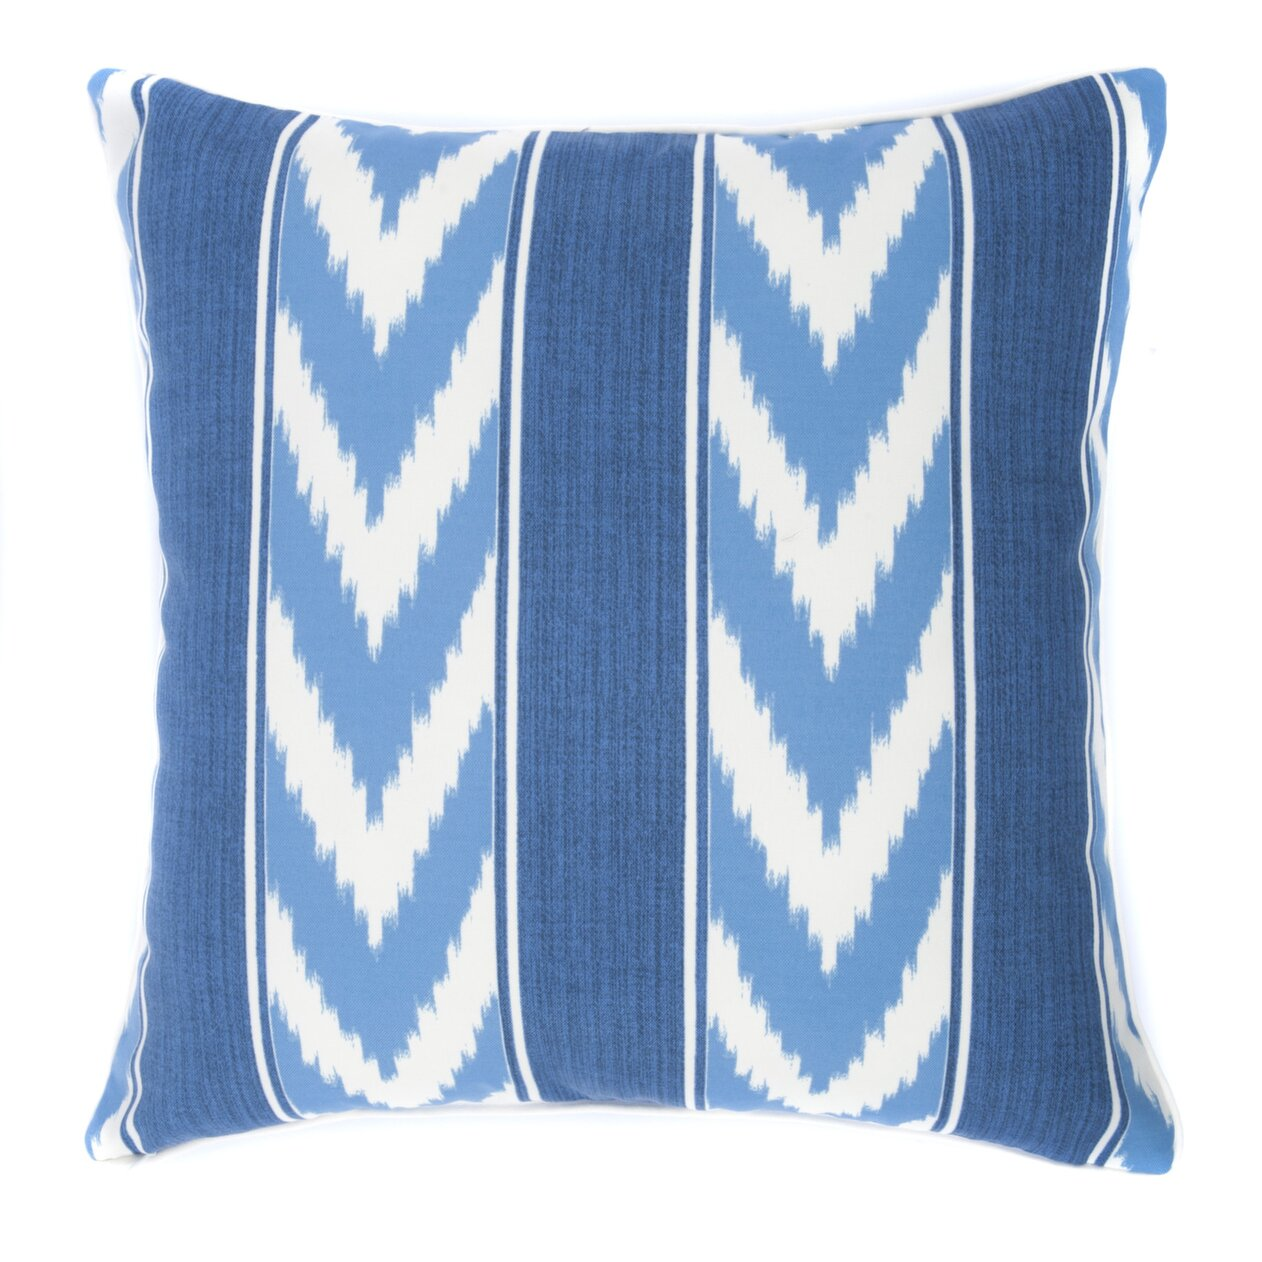 Jiti Decorative Pillows : Jiti Ikat Stripe Outdoor Throw Pillow & Reviews Wayfair